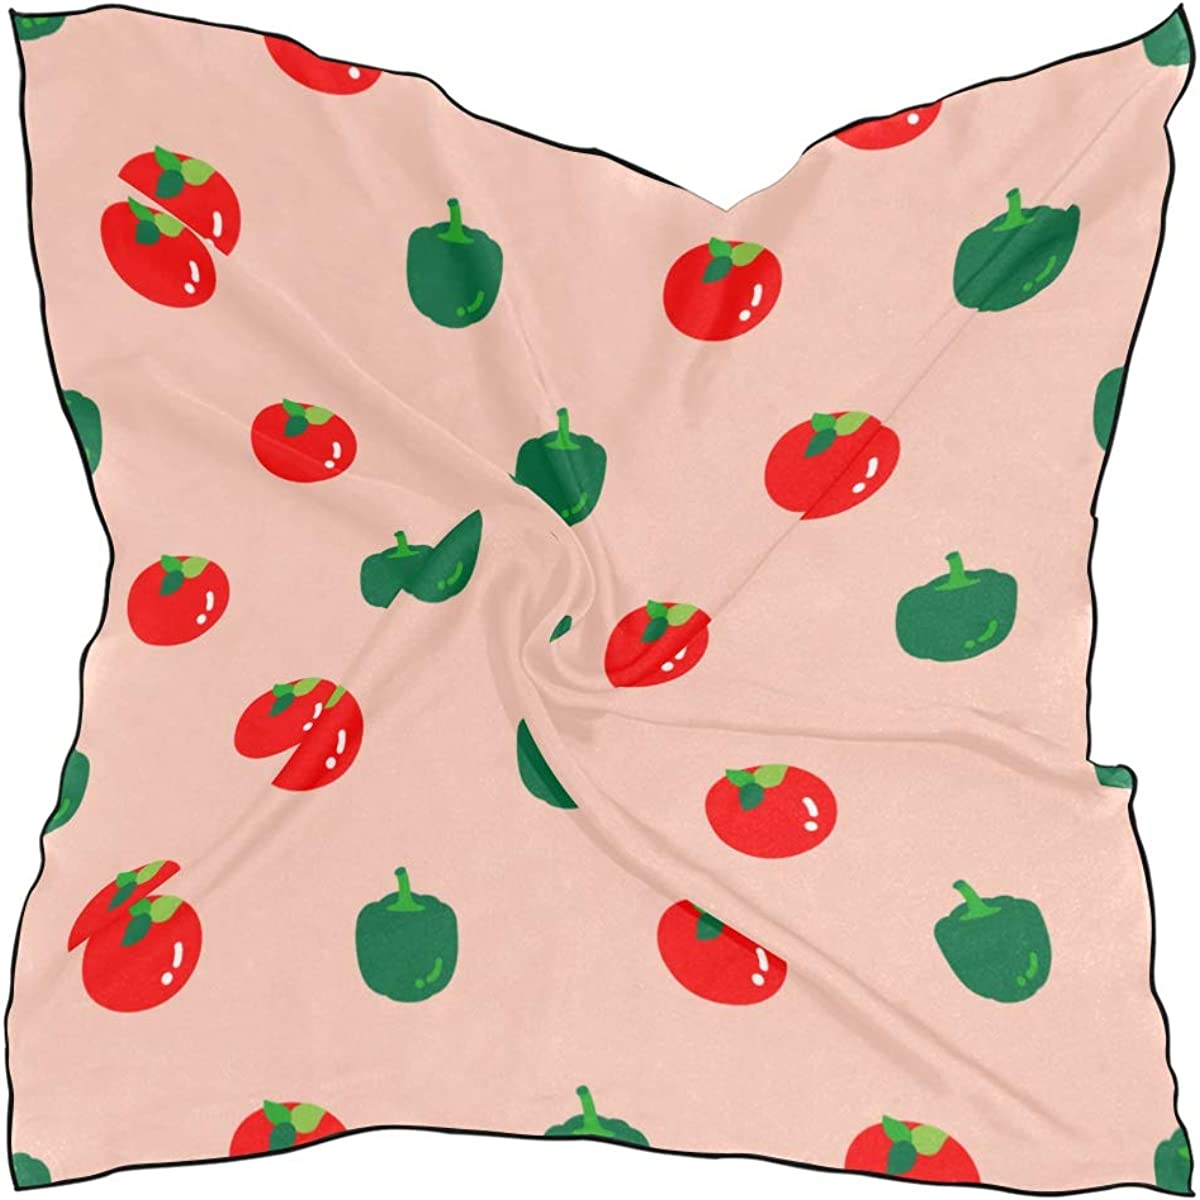 Women's Soft Polyester Silk Square Scarf Fashion Creative Vegetables Tomatoes Fashion Print Head Hair Scarf Neckerchief Scarves Accessory 23.6x23.6 Inch Multiple Ways Of Wearing Daily Decor